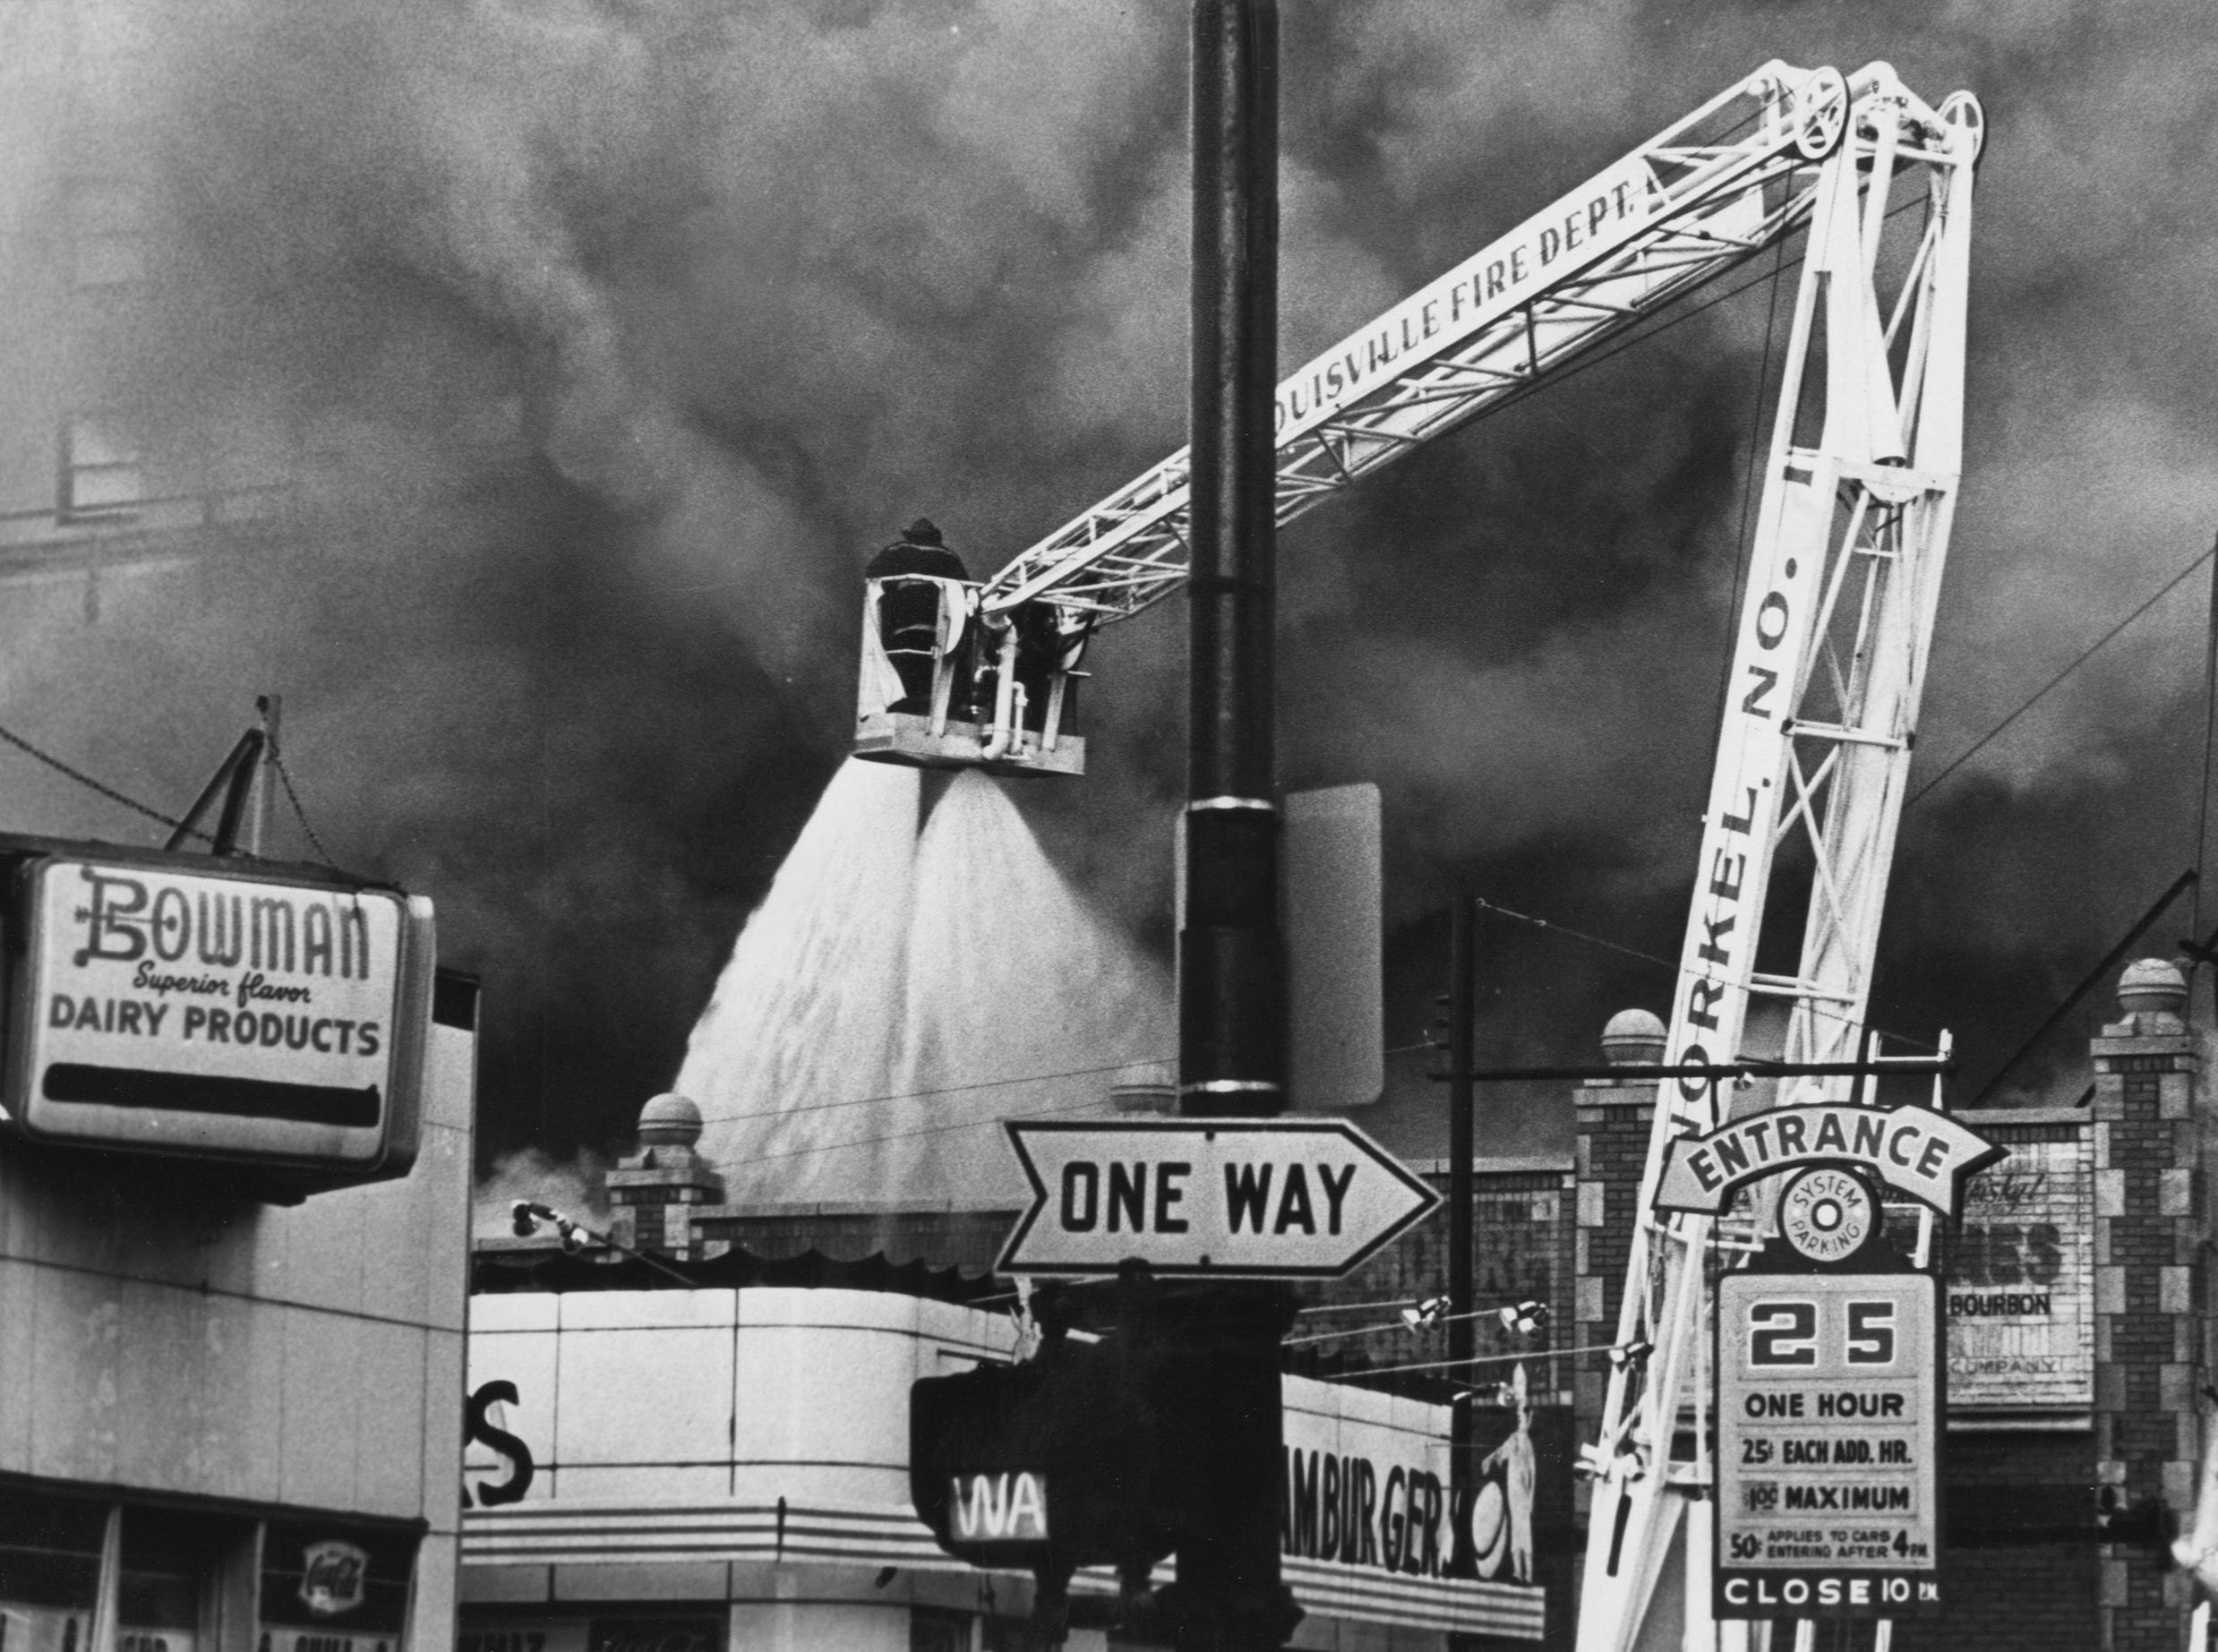 A snorkel truck reached its long arm above Dinty Moore's show bar to dump thousands of gallons of water on the roof of the building which also housed Playhouse Theater and a game center. 